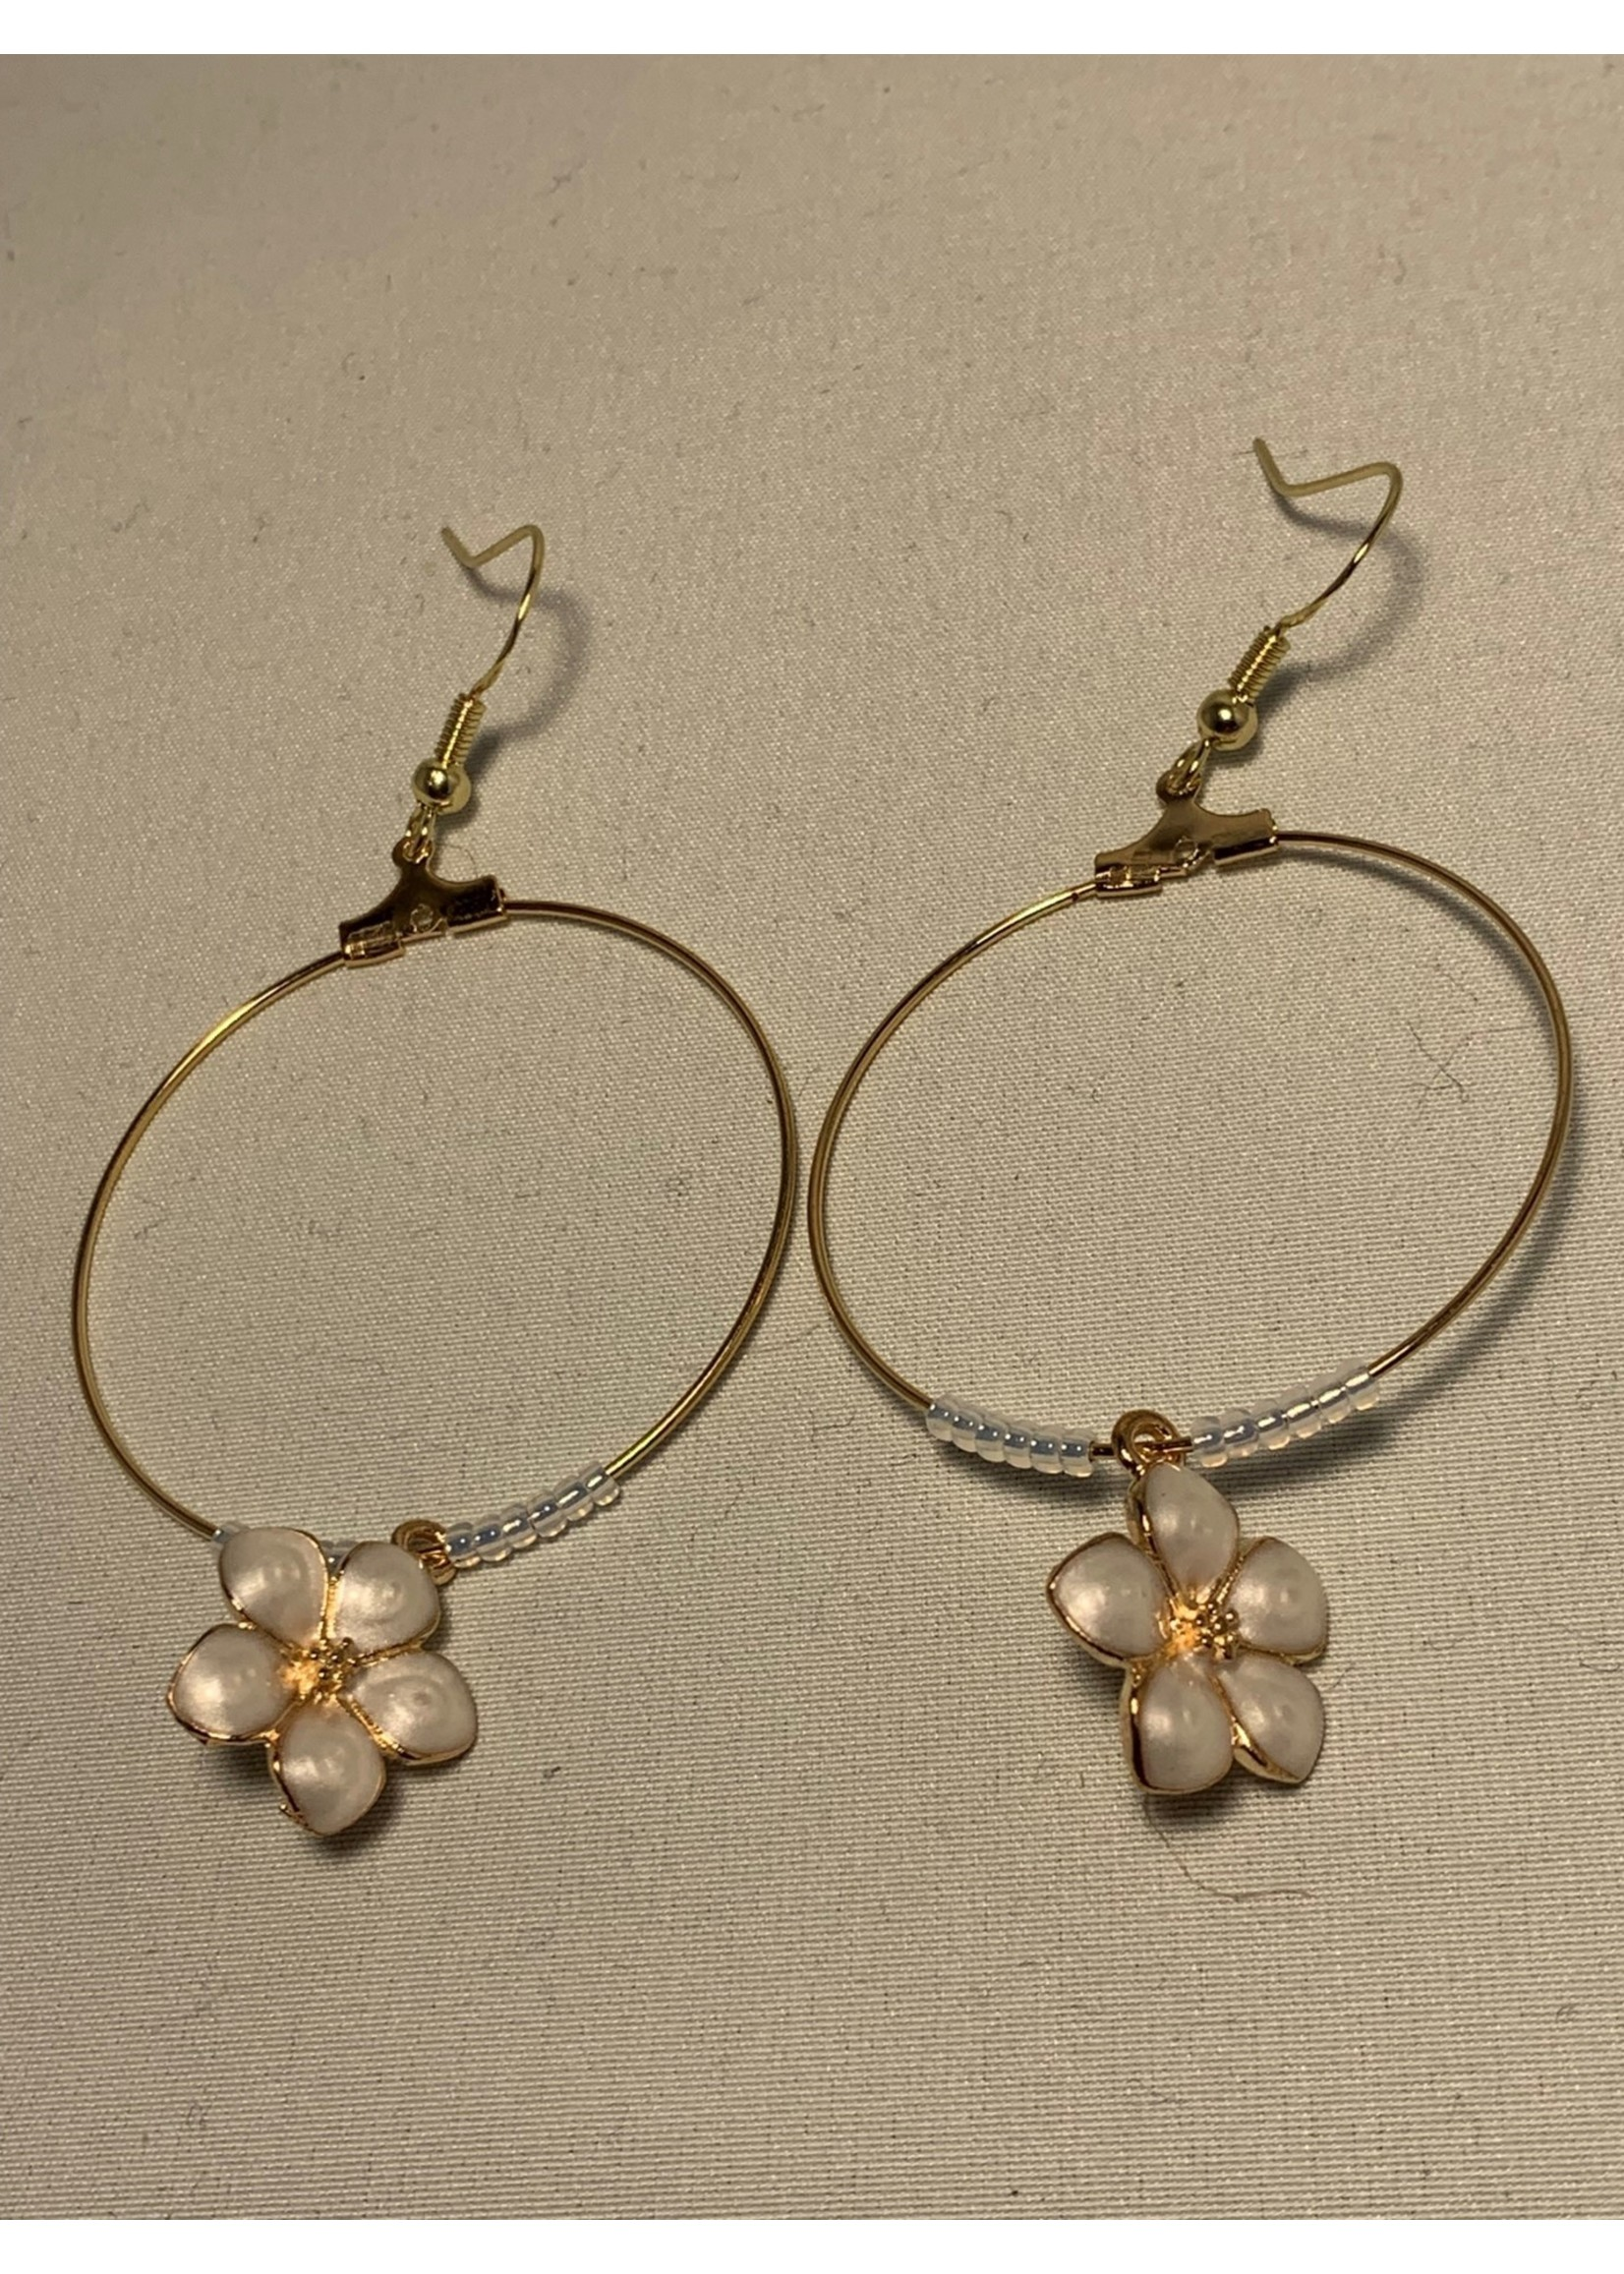 Large Hoop Earrings Pearl White Flowers on Gold Hoop with Gold Lined Pearl Beads